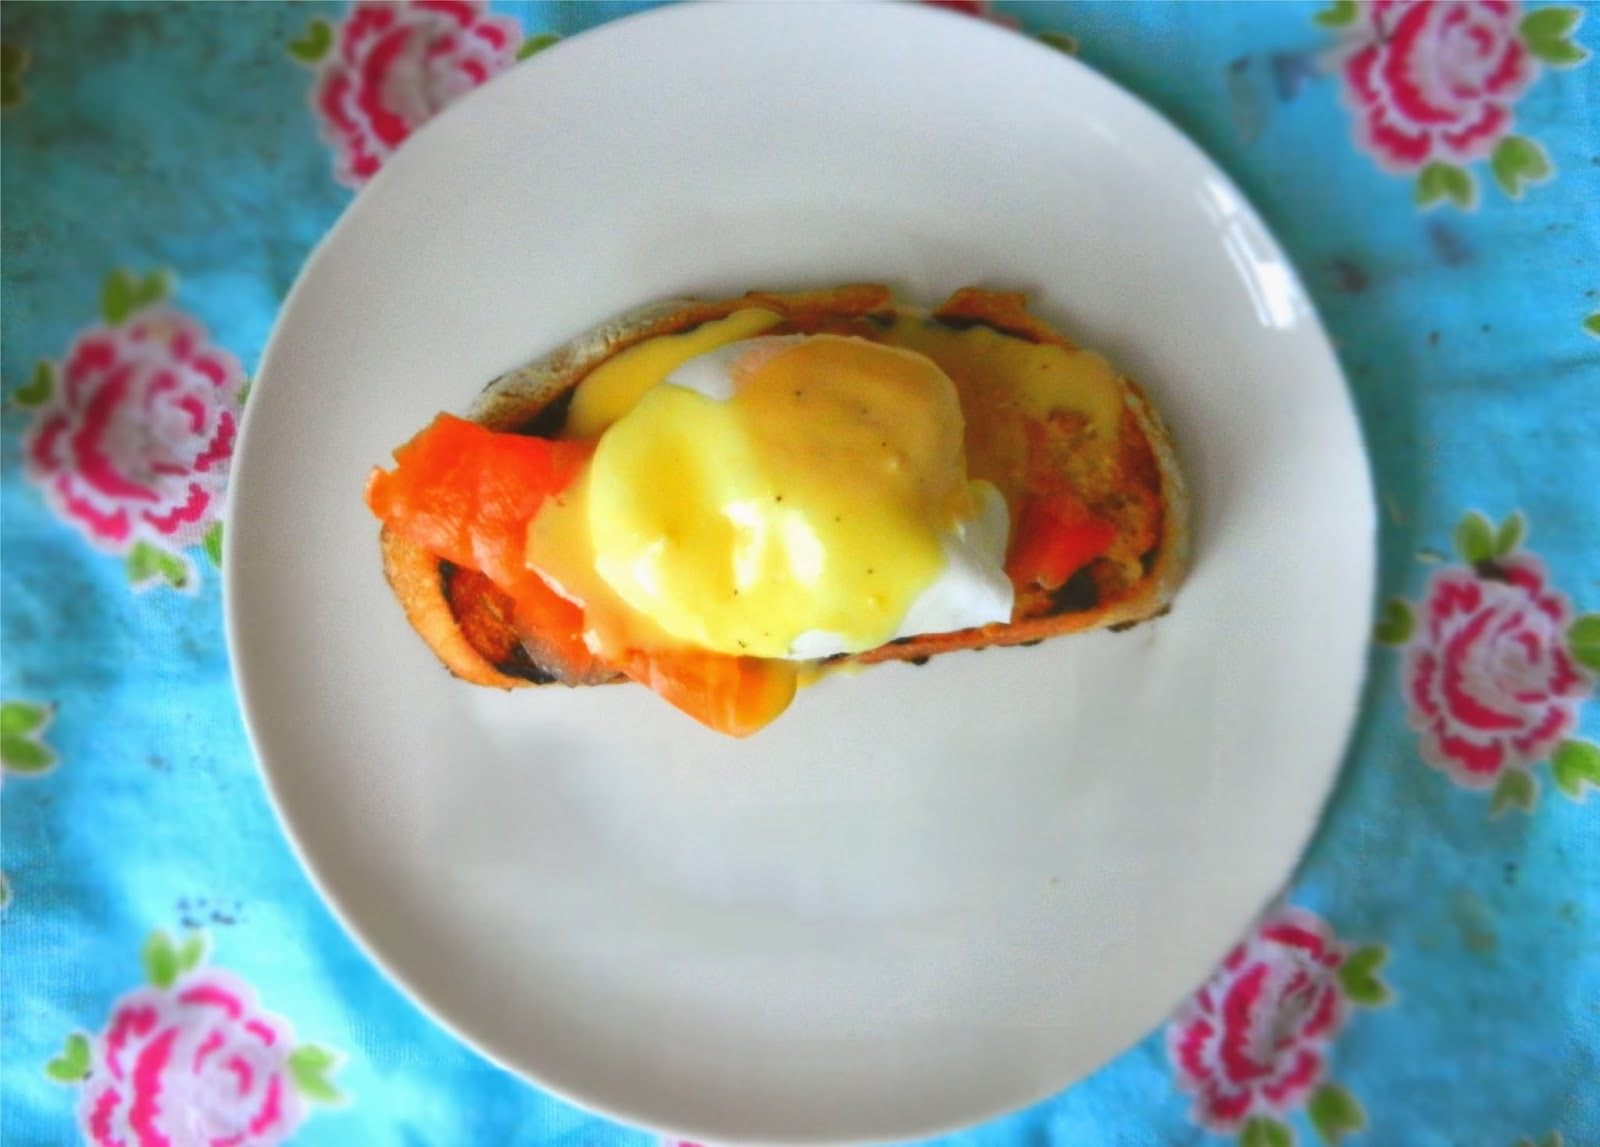 Poached Eggs, Smoked Salmon and Hollandaise Sauce on Grilled Sourdough